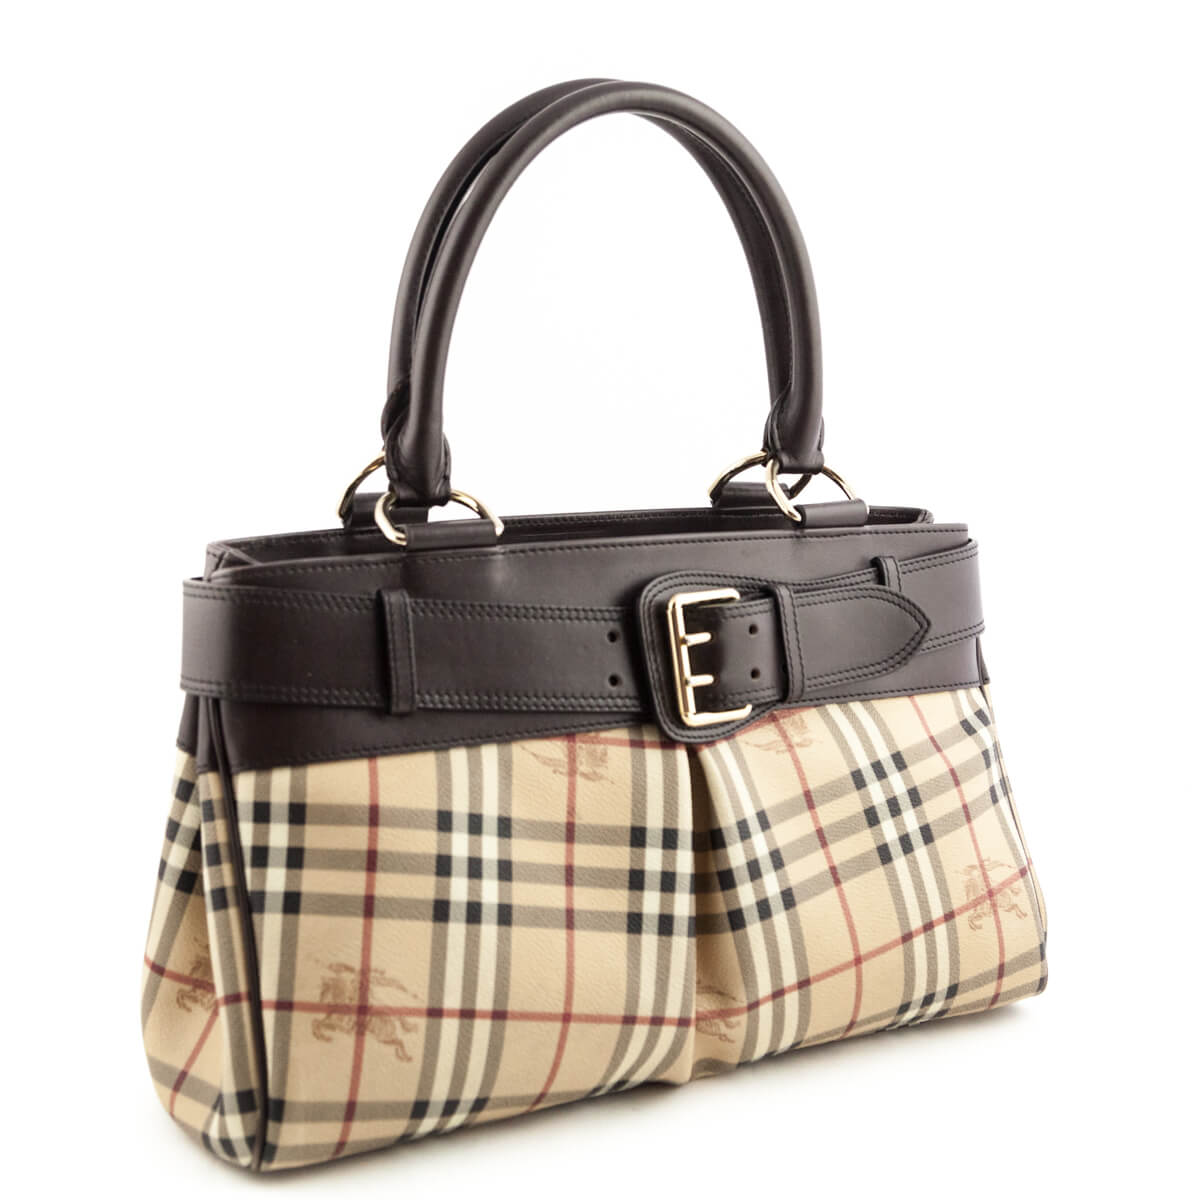 ... Burberry Haymarket Check Leather-Trimmed Buckle tote - LOVE that BAG - Preowned  Authentic Designer ... 6028887e32fde